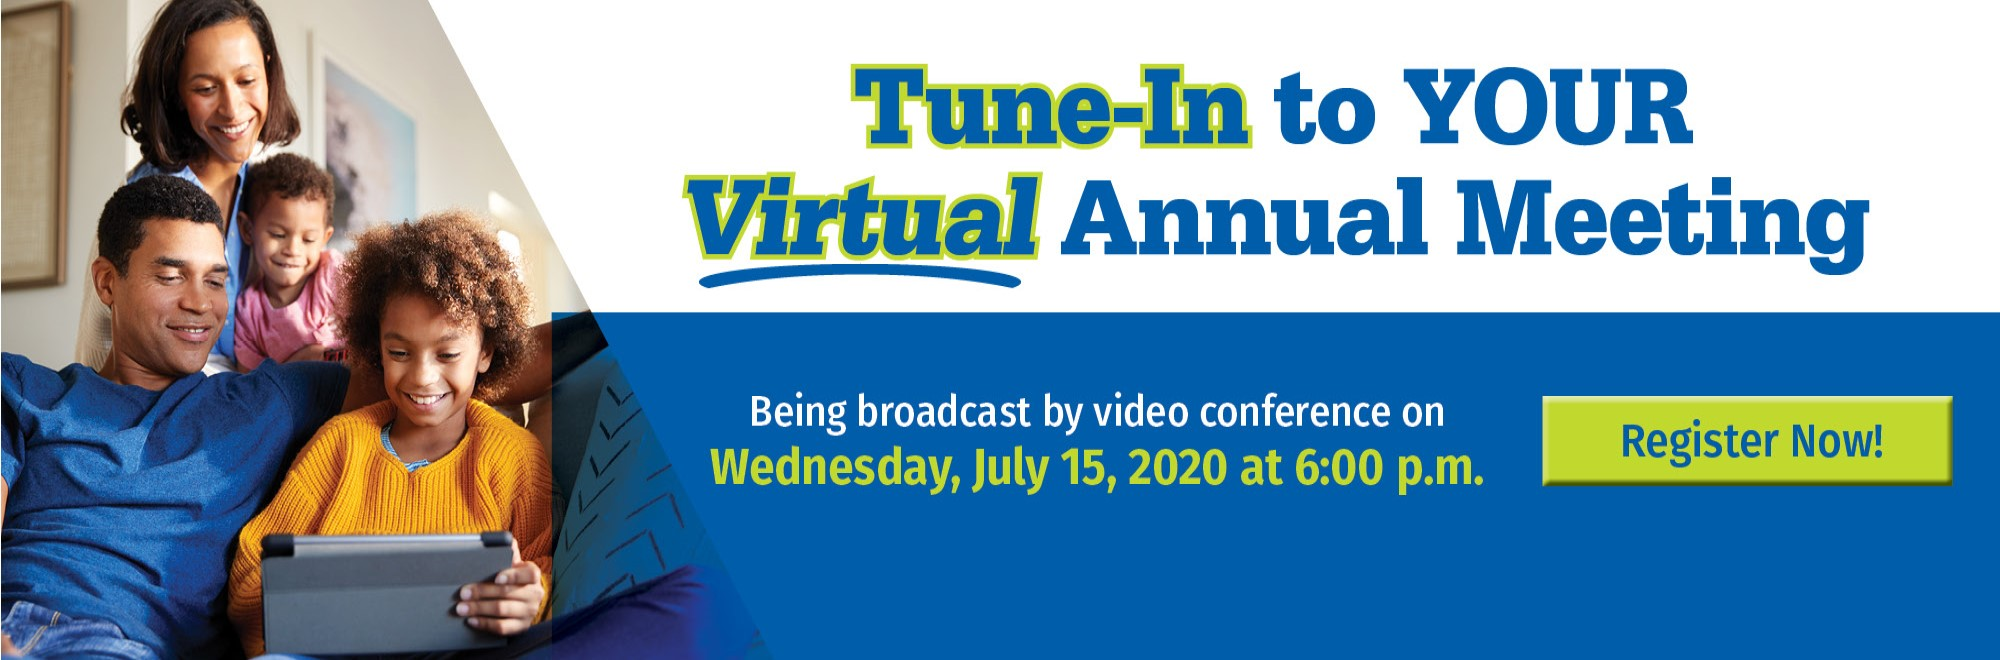 Tune-in to your virtual annual meeting on Wed., July 15th at 6pm.